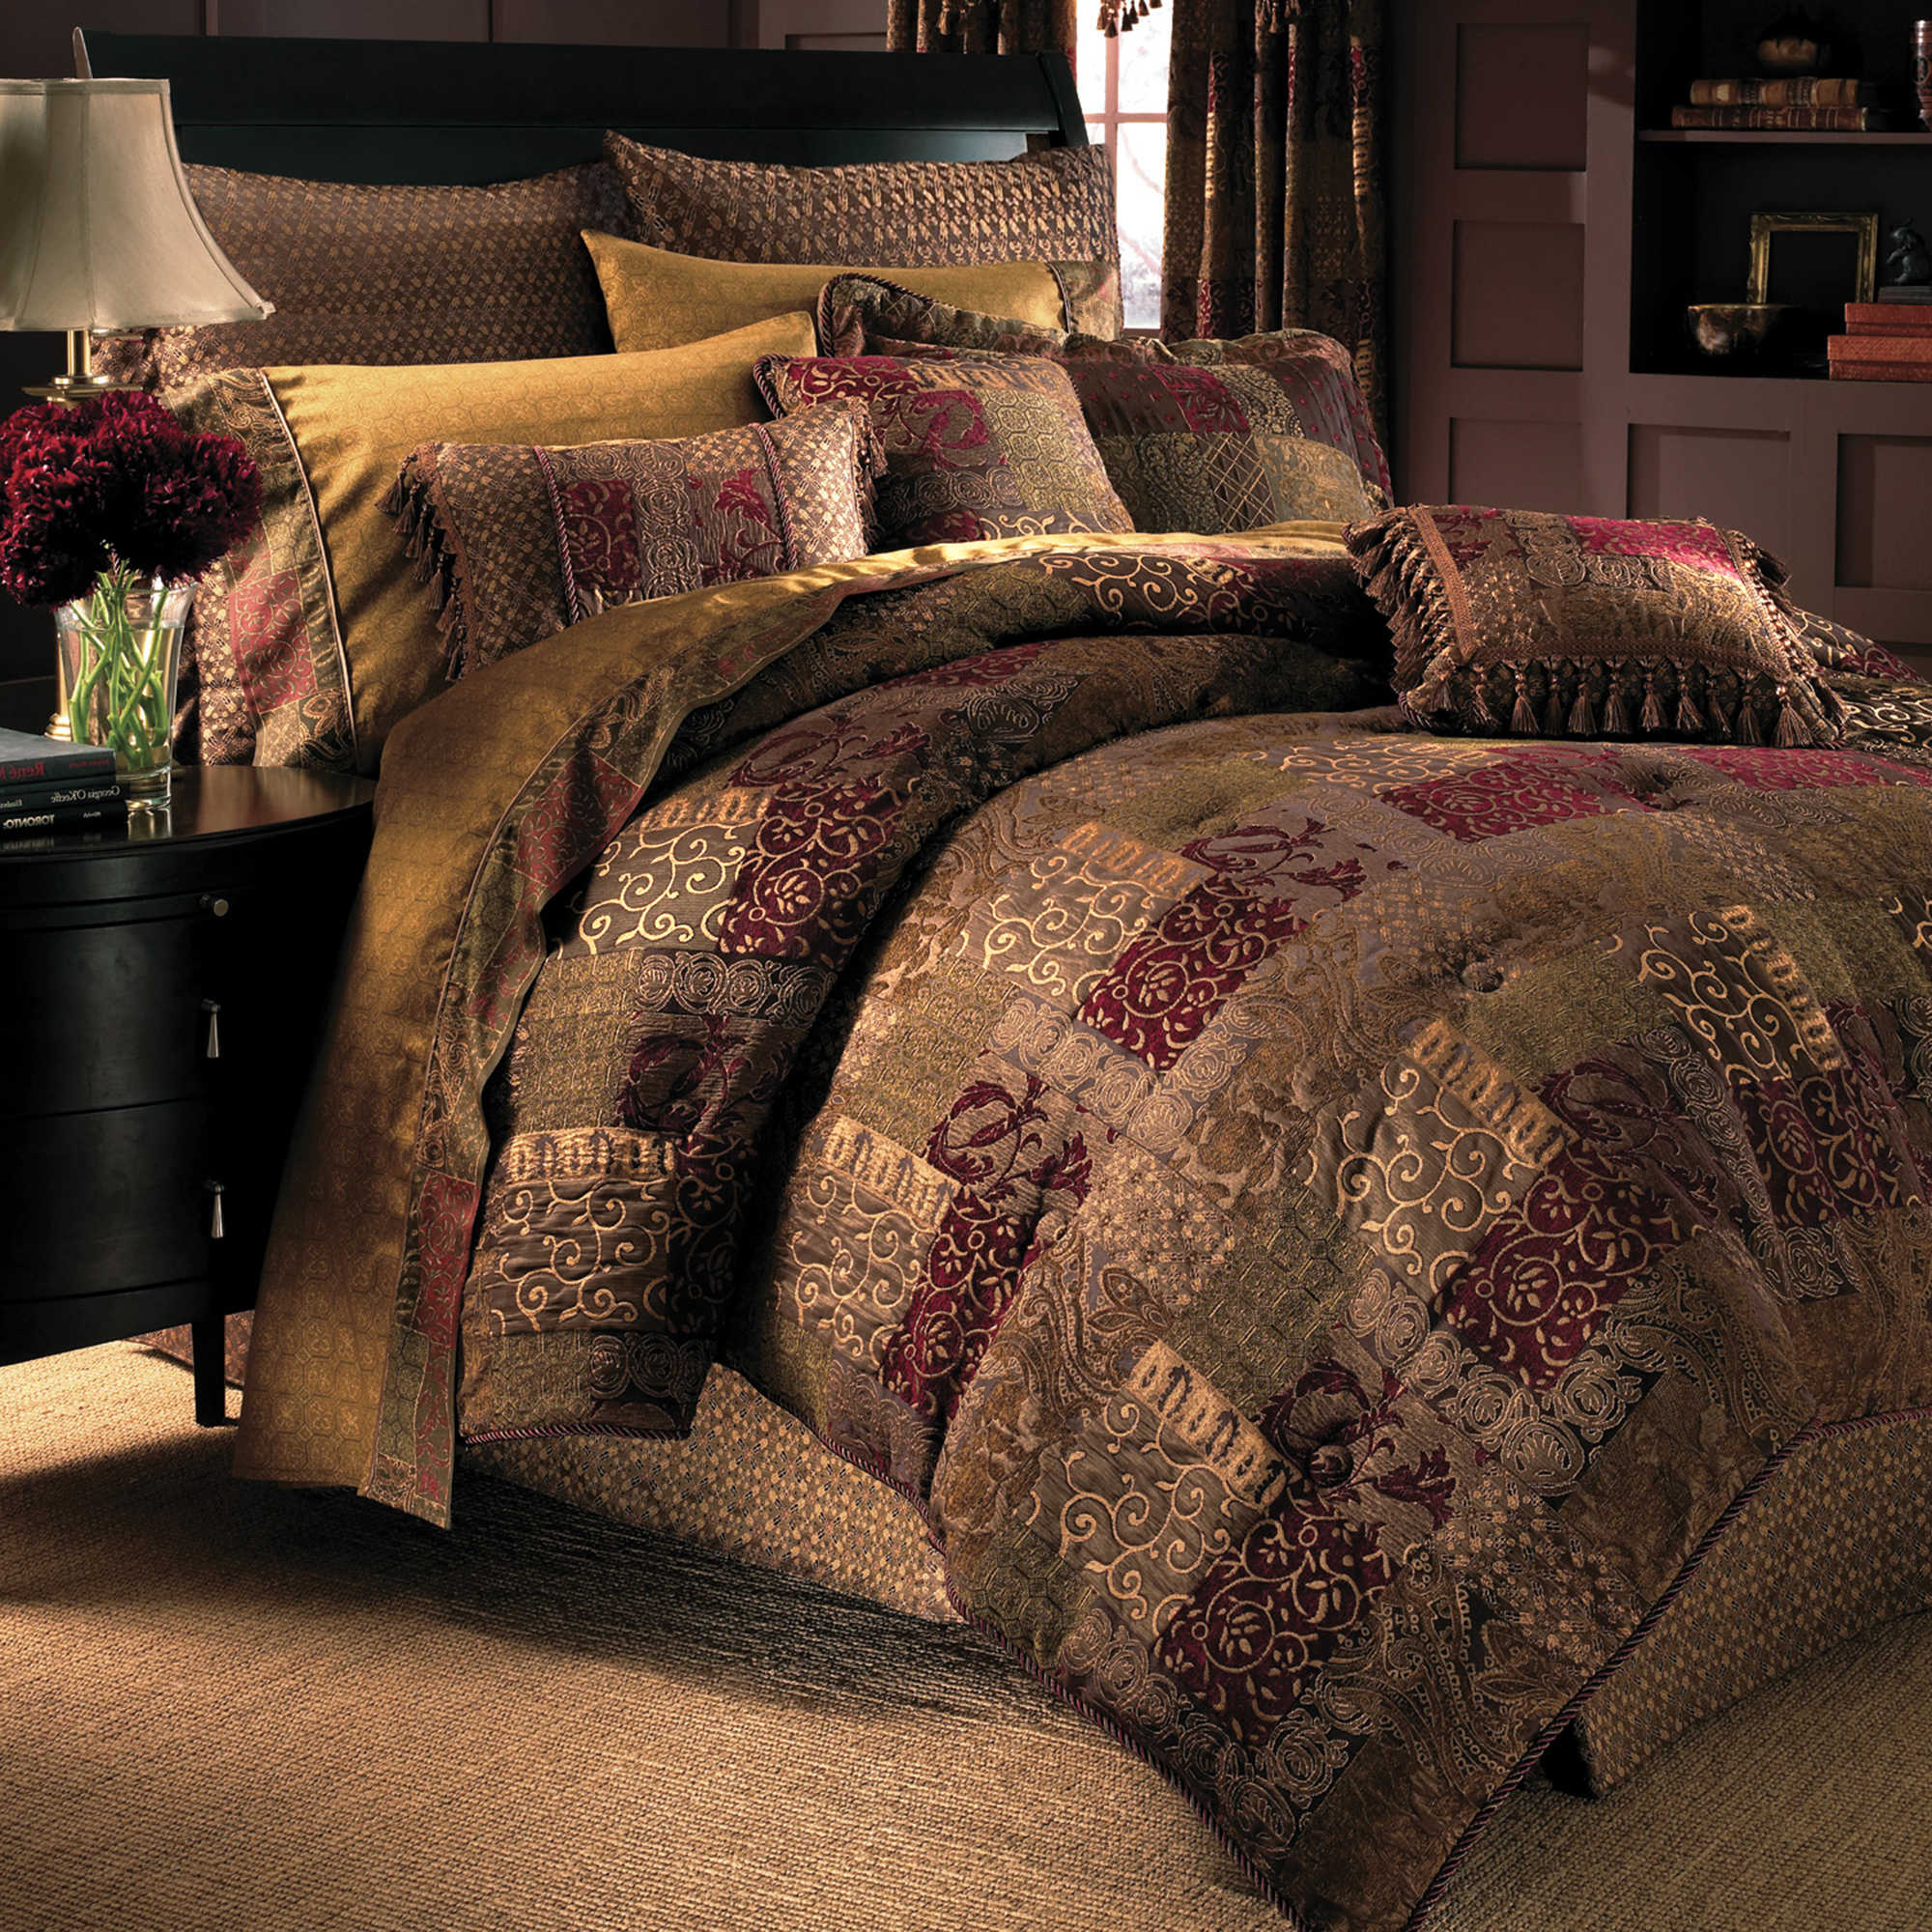 Croscill Galleria Comforter Set Queen Red